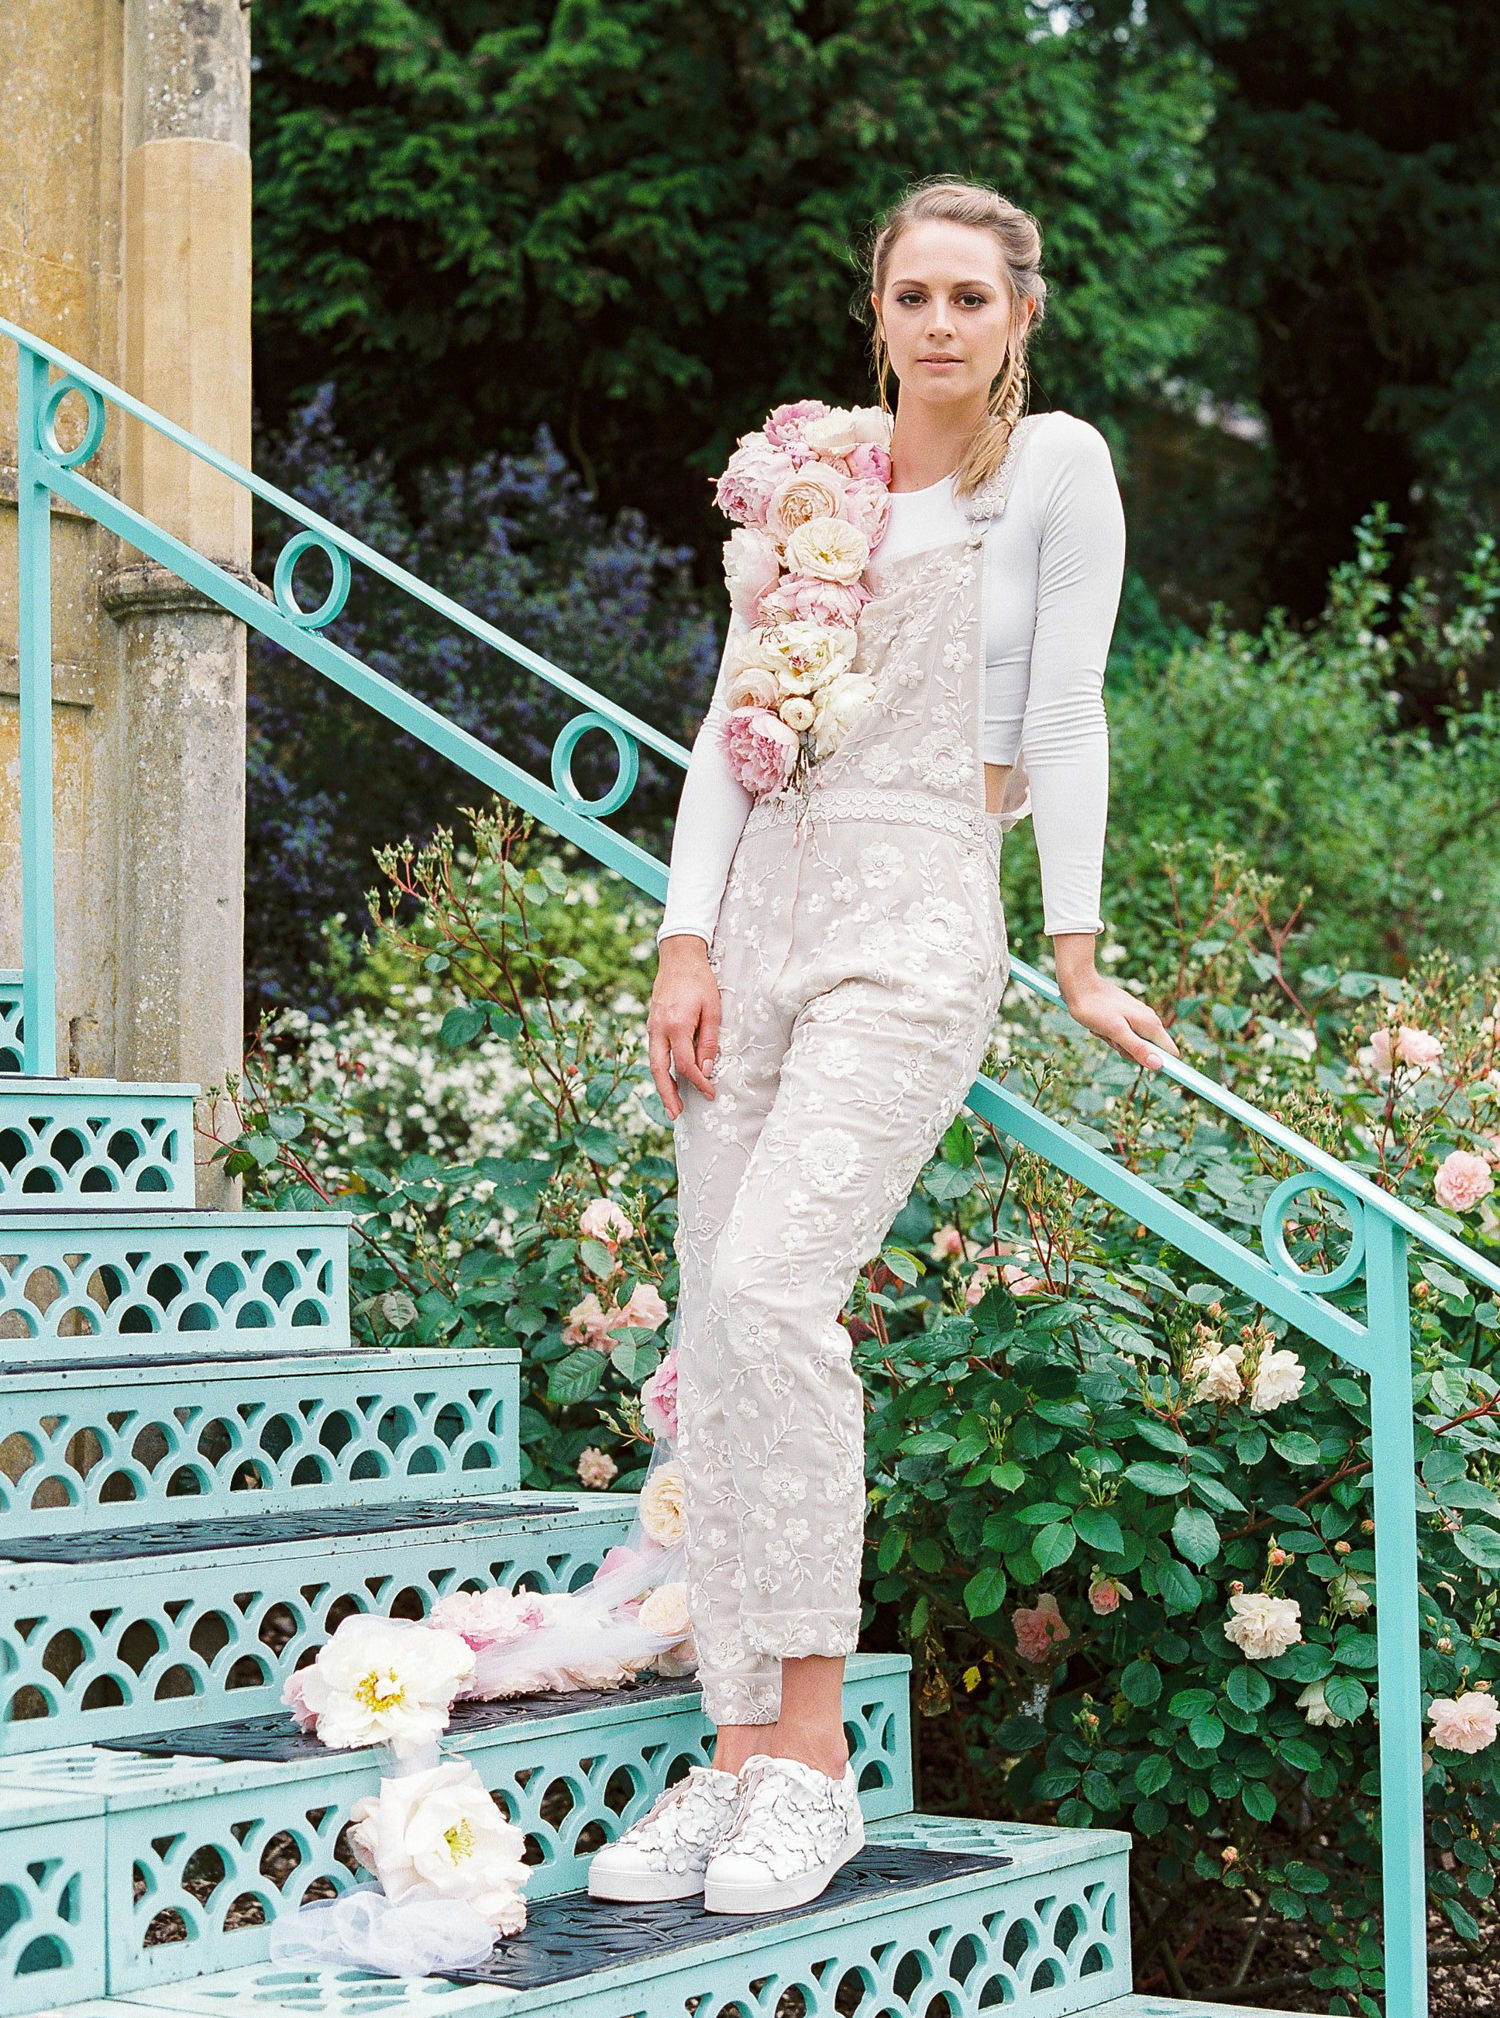 Lucy Davenport Photography, Sezincote House & Gardens, wedding venue, Needle & Thread, jumpsuit, LA Bespoke, wedding dress, Suzanne Harward, Sezincote inspiration, bridal dungarees from Needle & Thread. Floral garland.